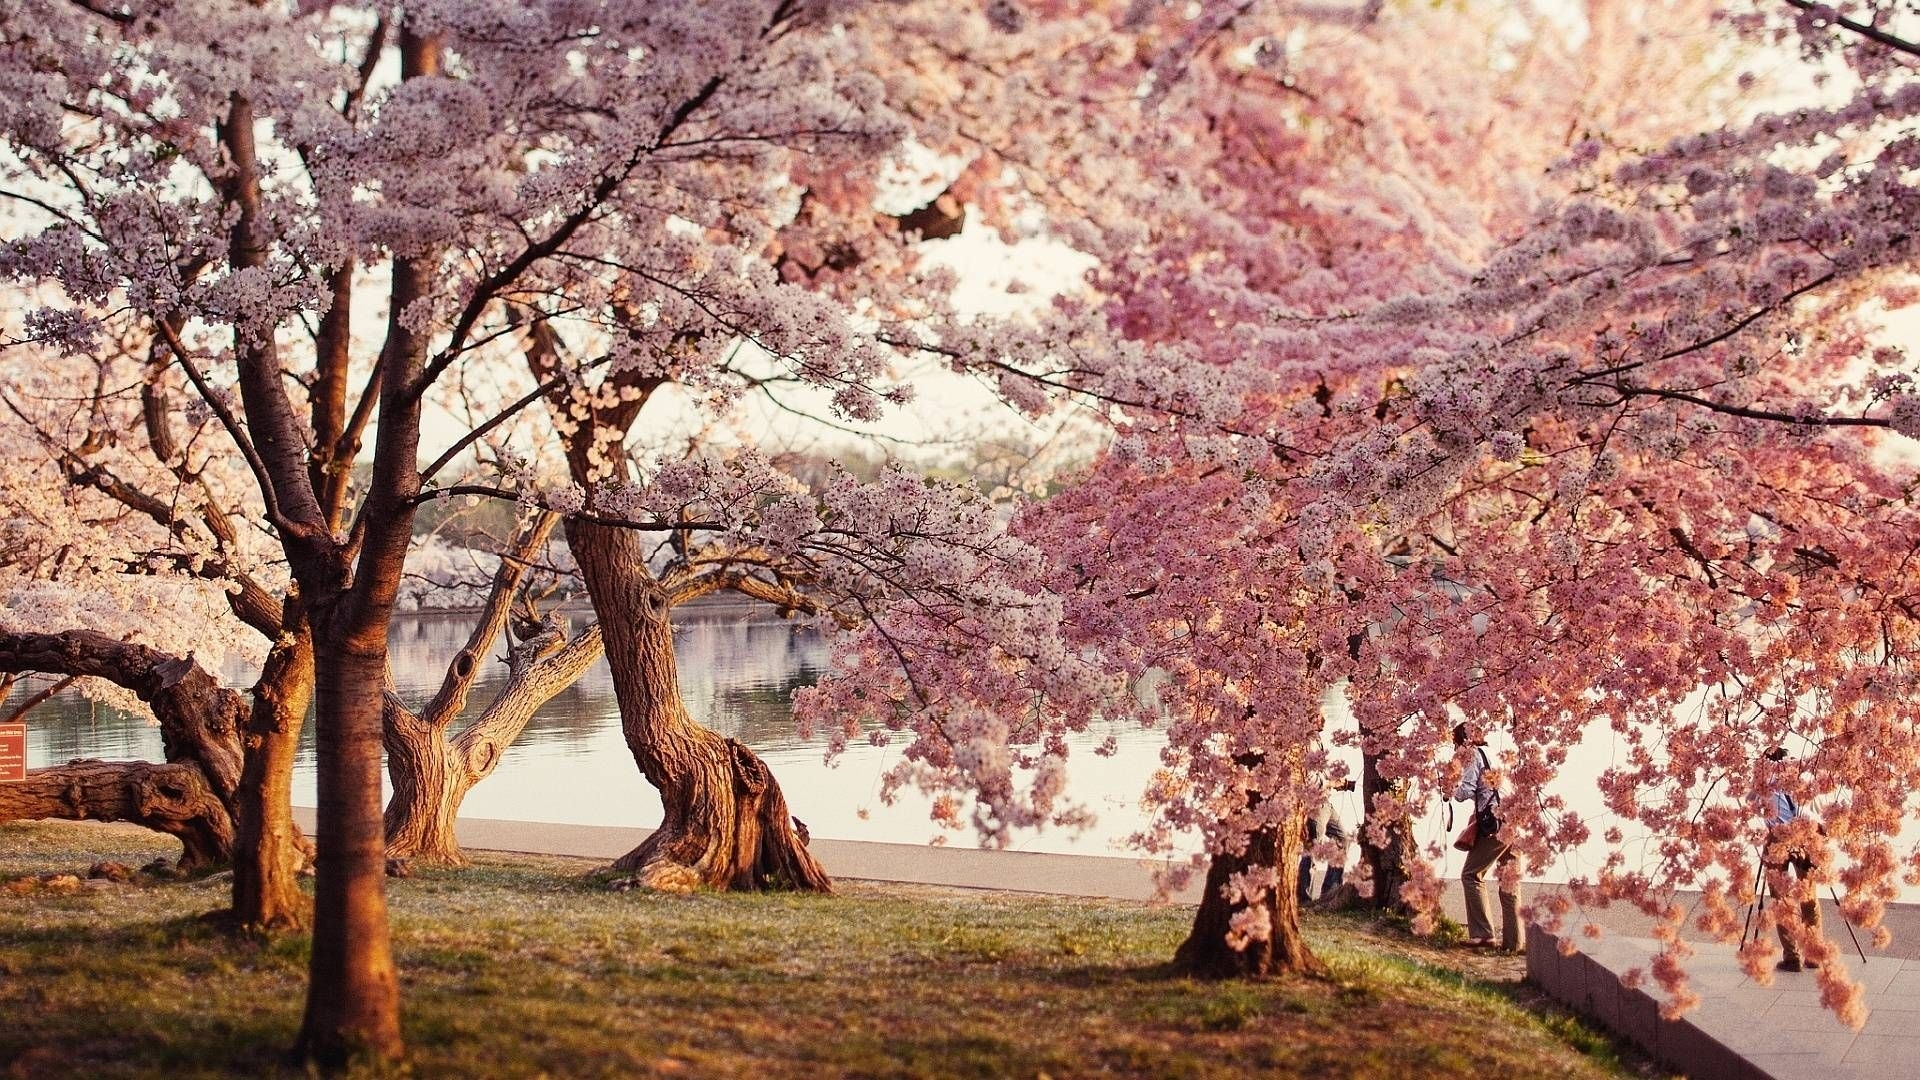 cherry blossom desktop wallpapers wallpaper | computer wallpaper